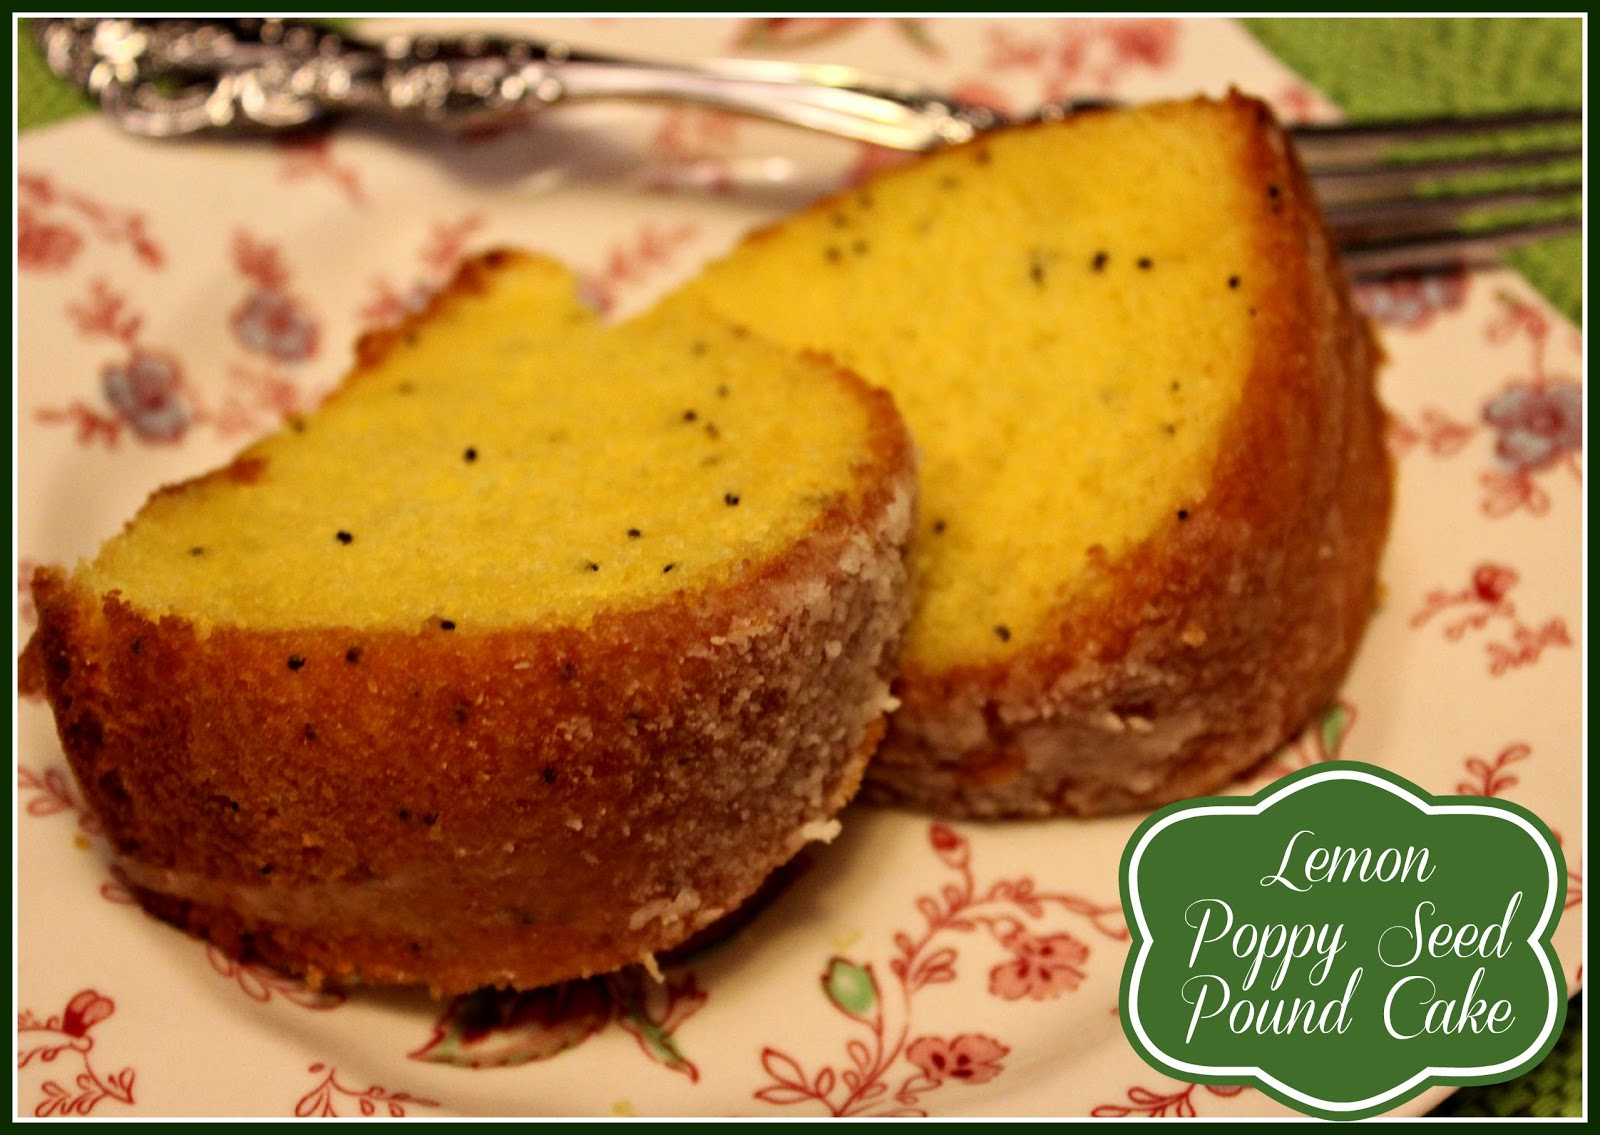 Sweet Tea and Cornbread Lemon Poppy Seed Pound Cake